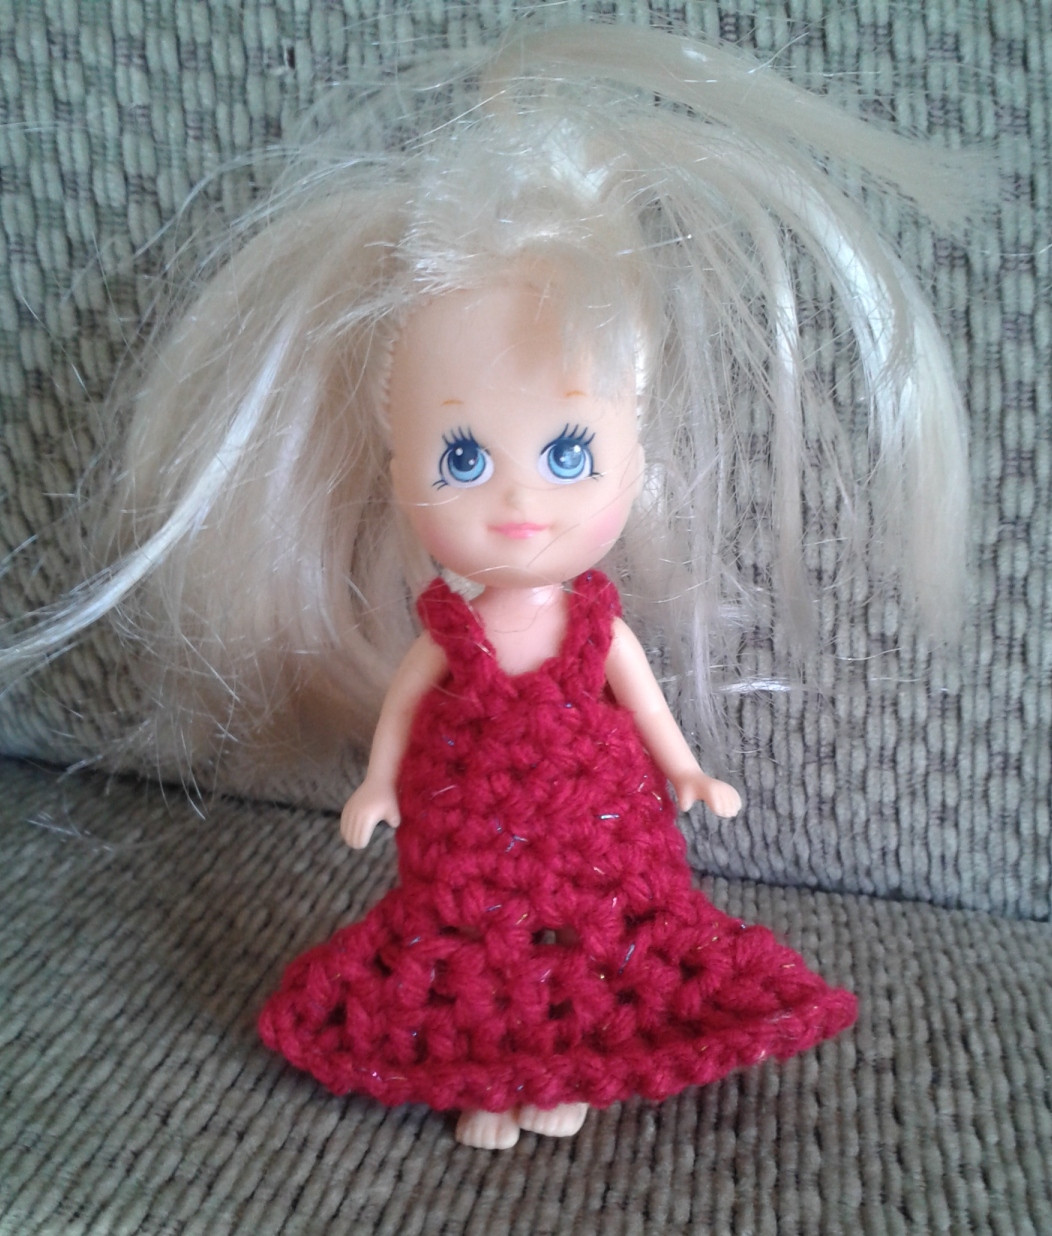 Crochet Doll Awesome Small Doll Clothing Free Patterns Of Delightful 47 Pictures Crochet Doll